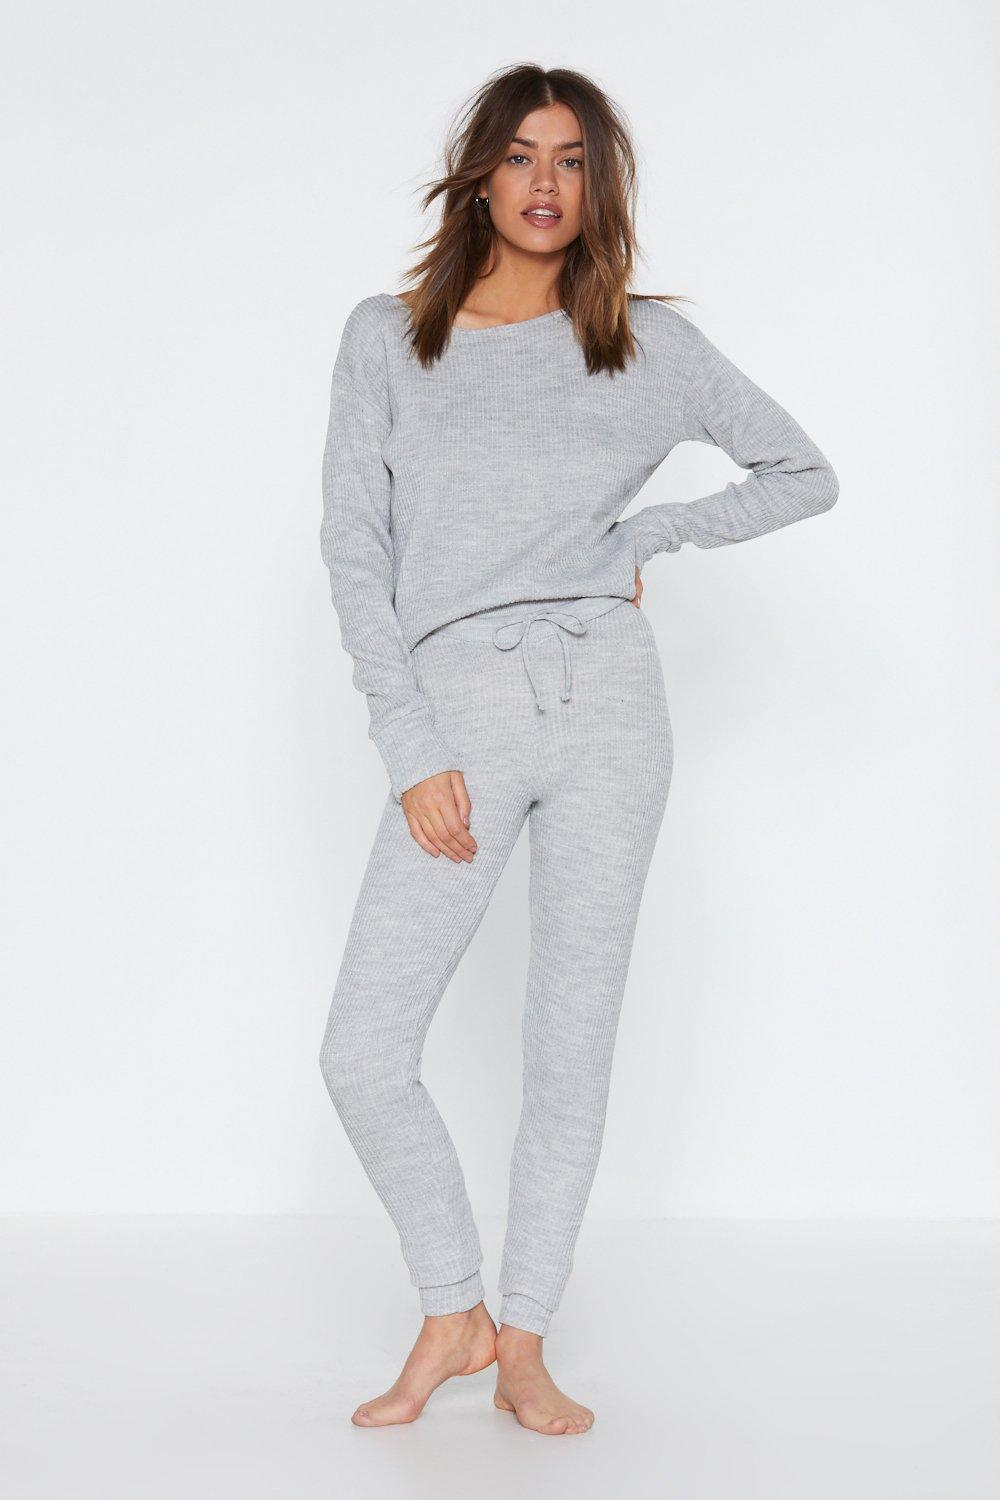 Serious Chills Sweater and Joggers Lounge Set